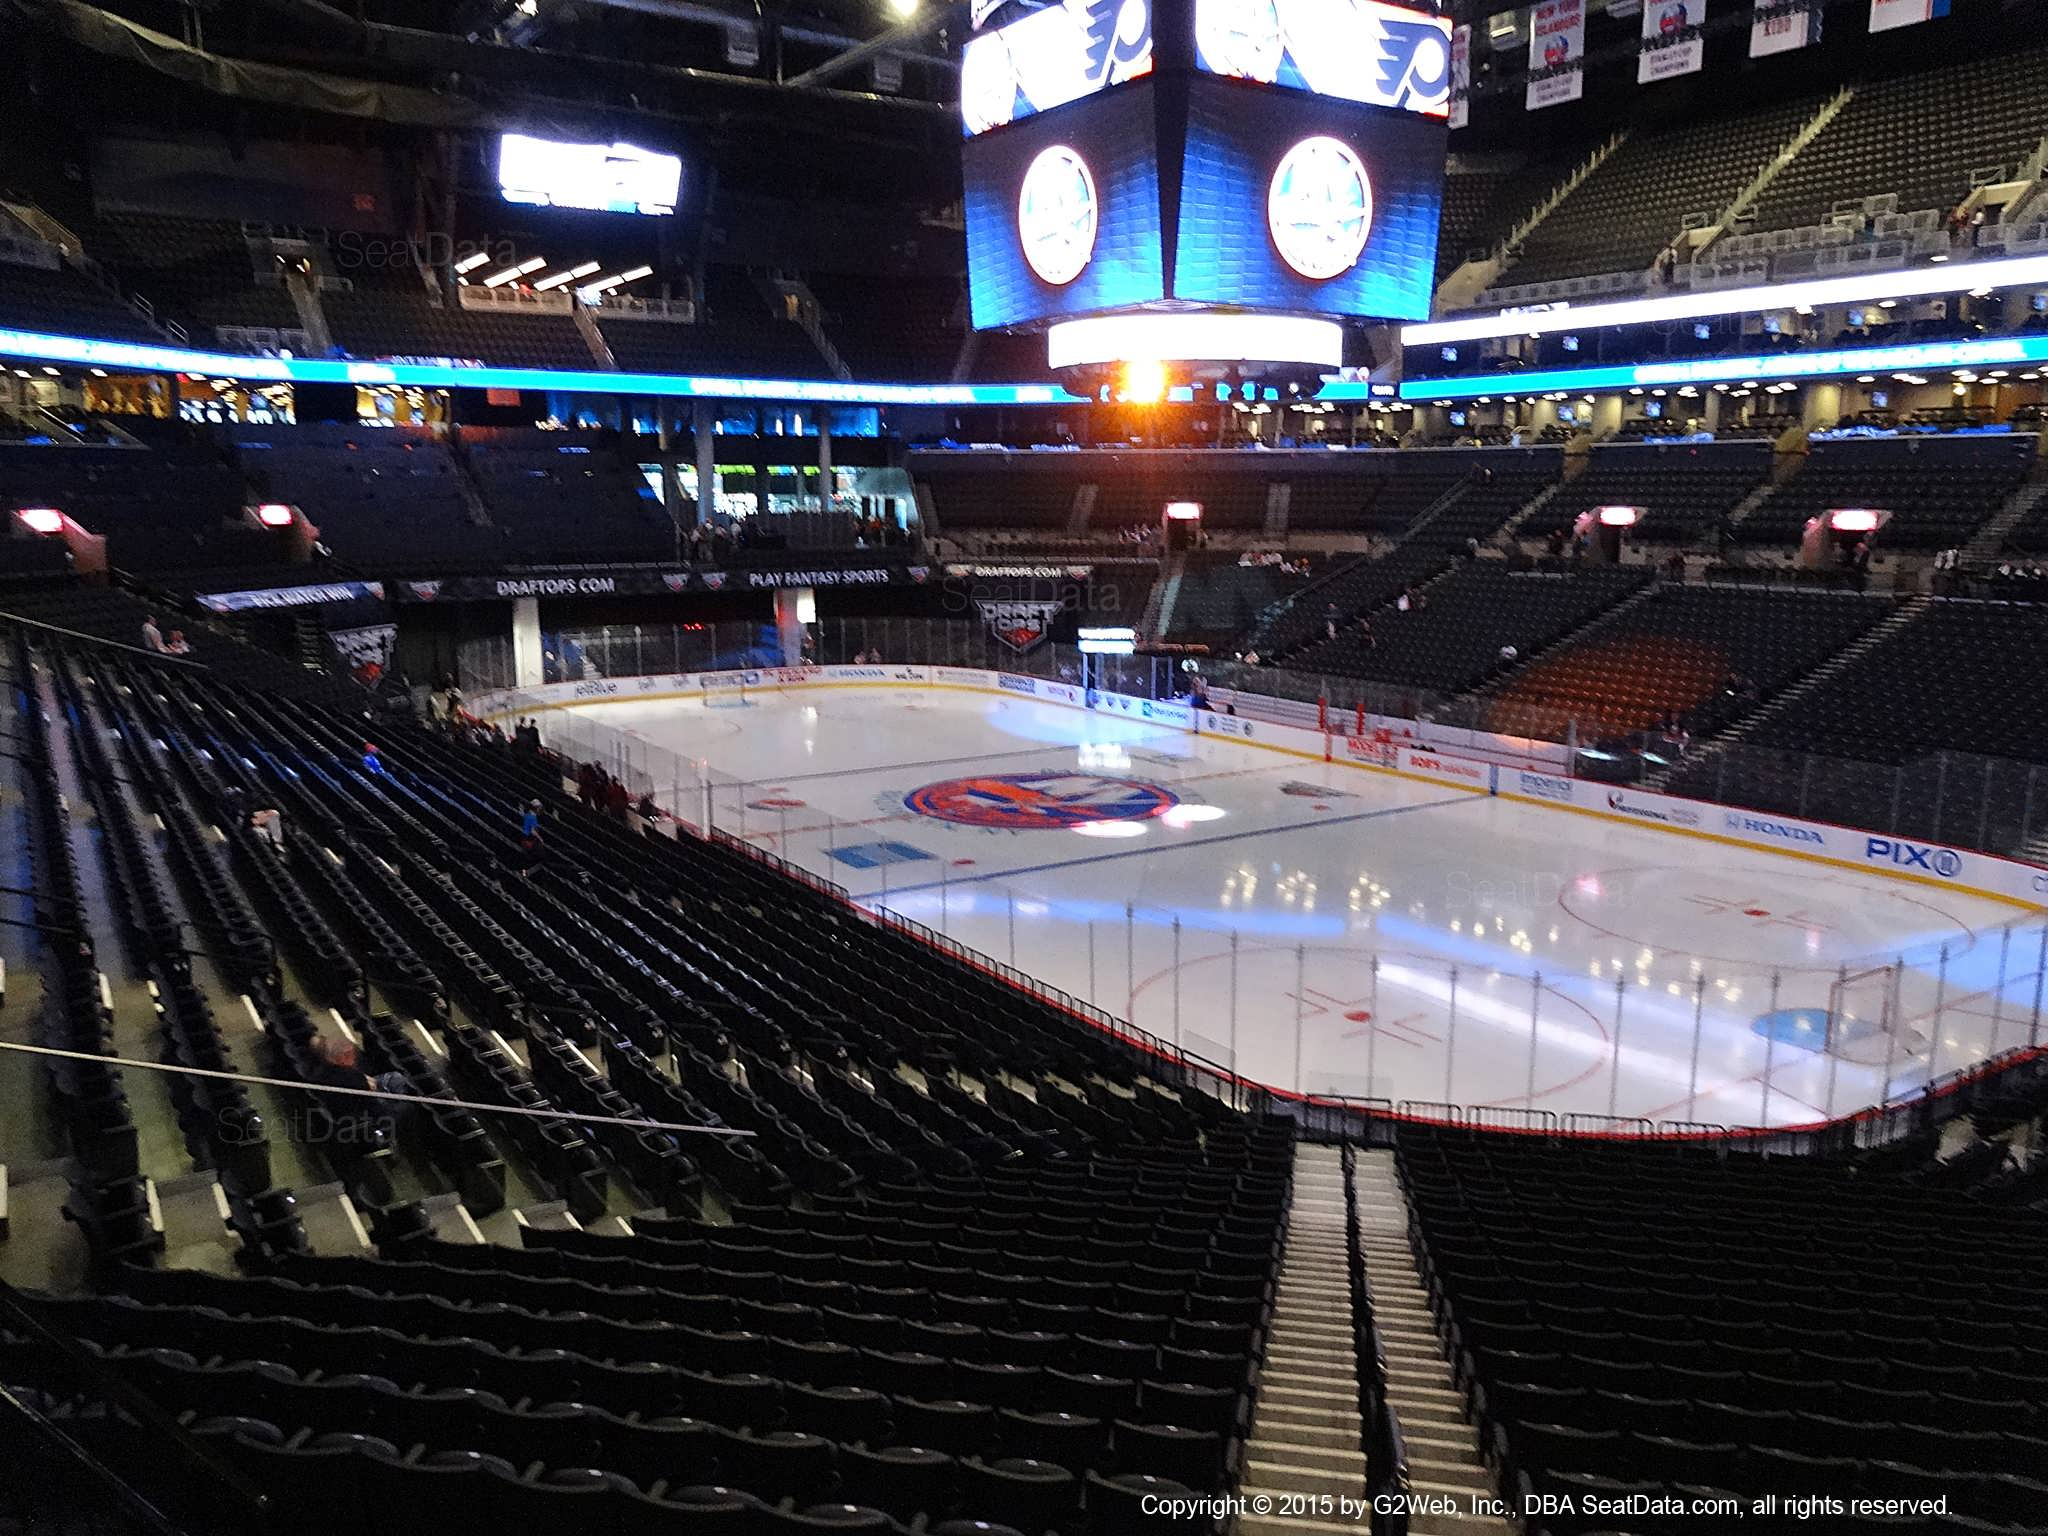 Seat View from Section 120 at the Barclays Center, home of the New York Islanders